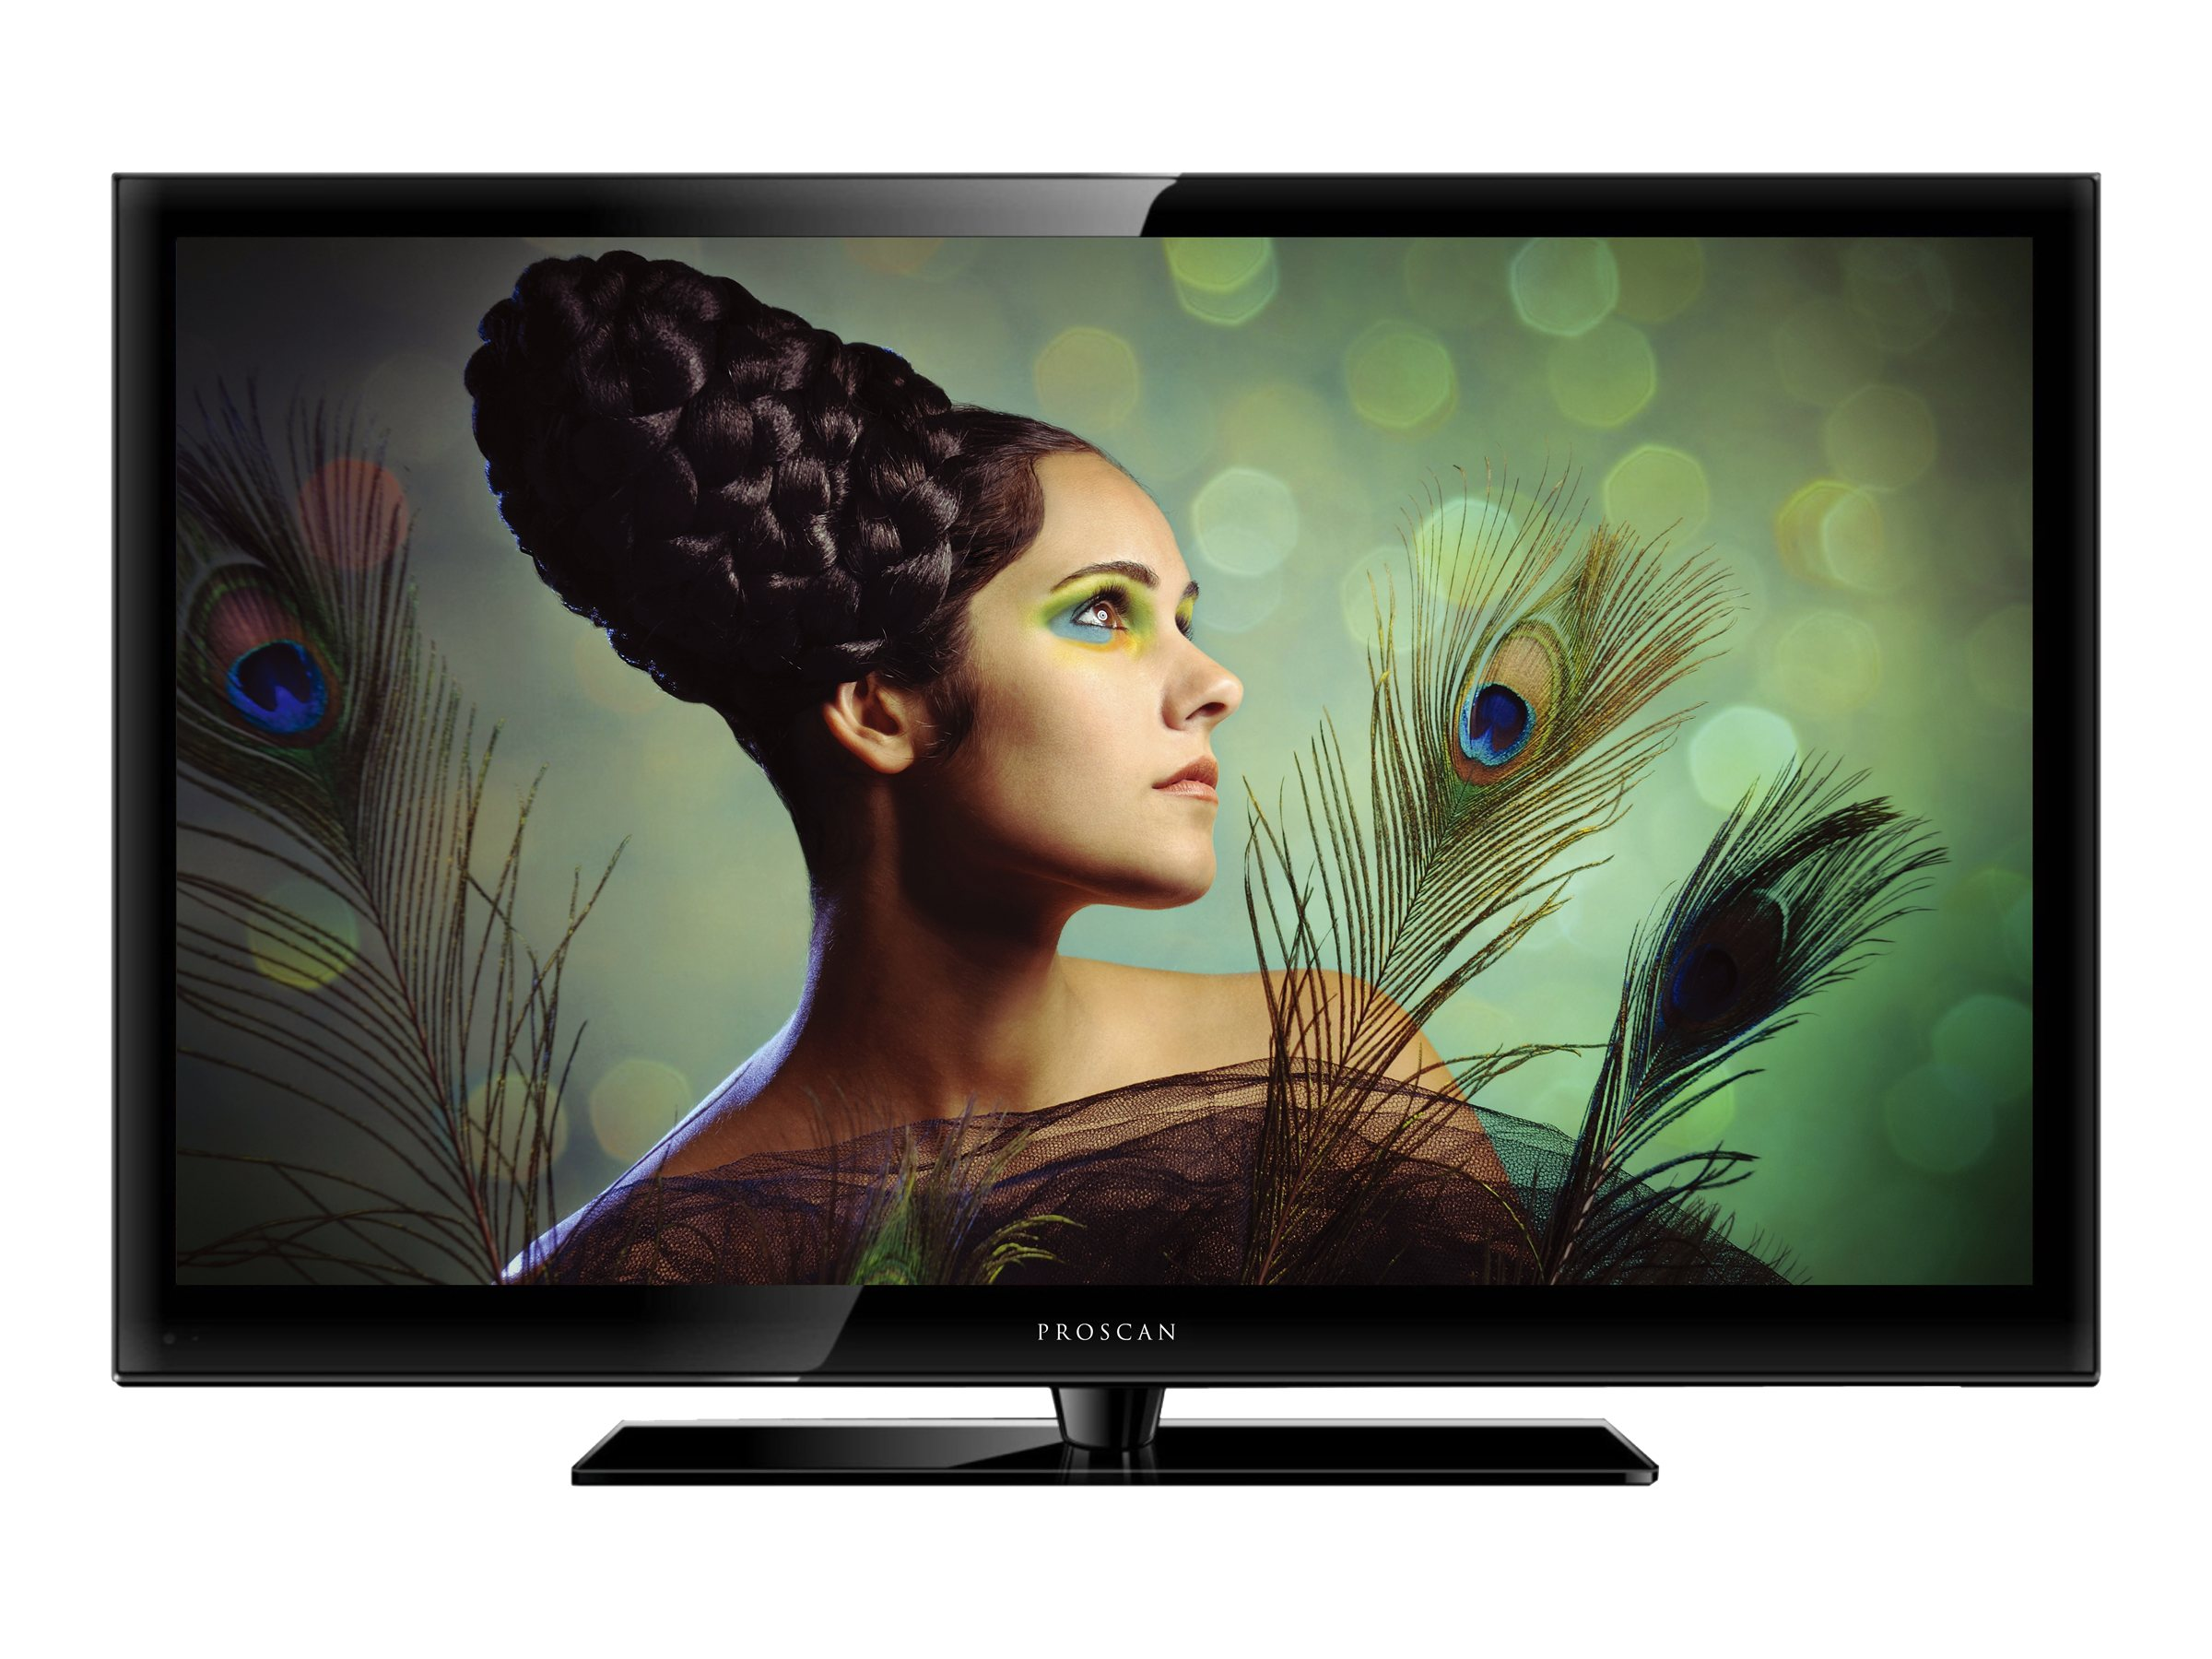 Proscan 32 PLDV321300 LED-LCD TV, Black with DVD Player, PLDV321300